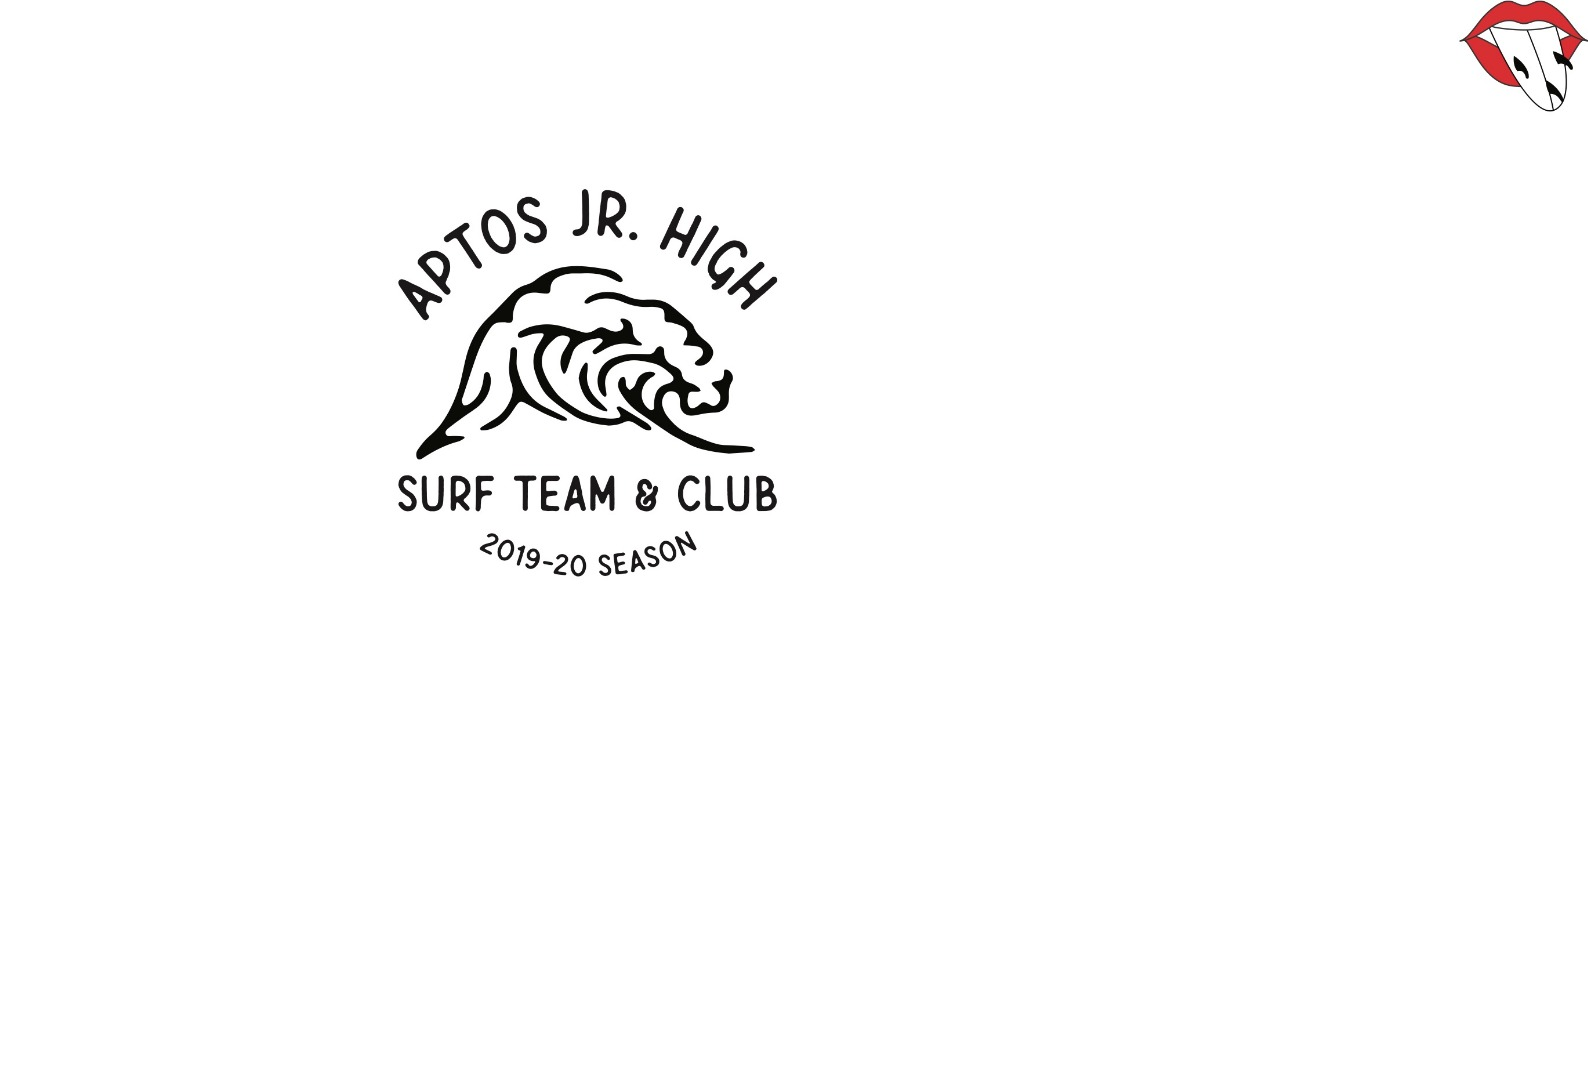 Hoodies and windbreakers will be 30. Please help support the Aptos Jr. High  Surf Team and Club